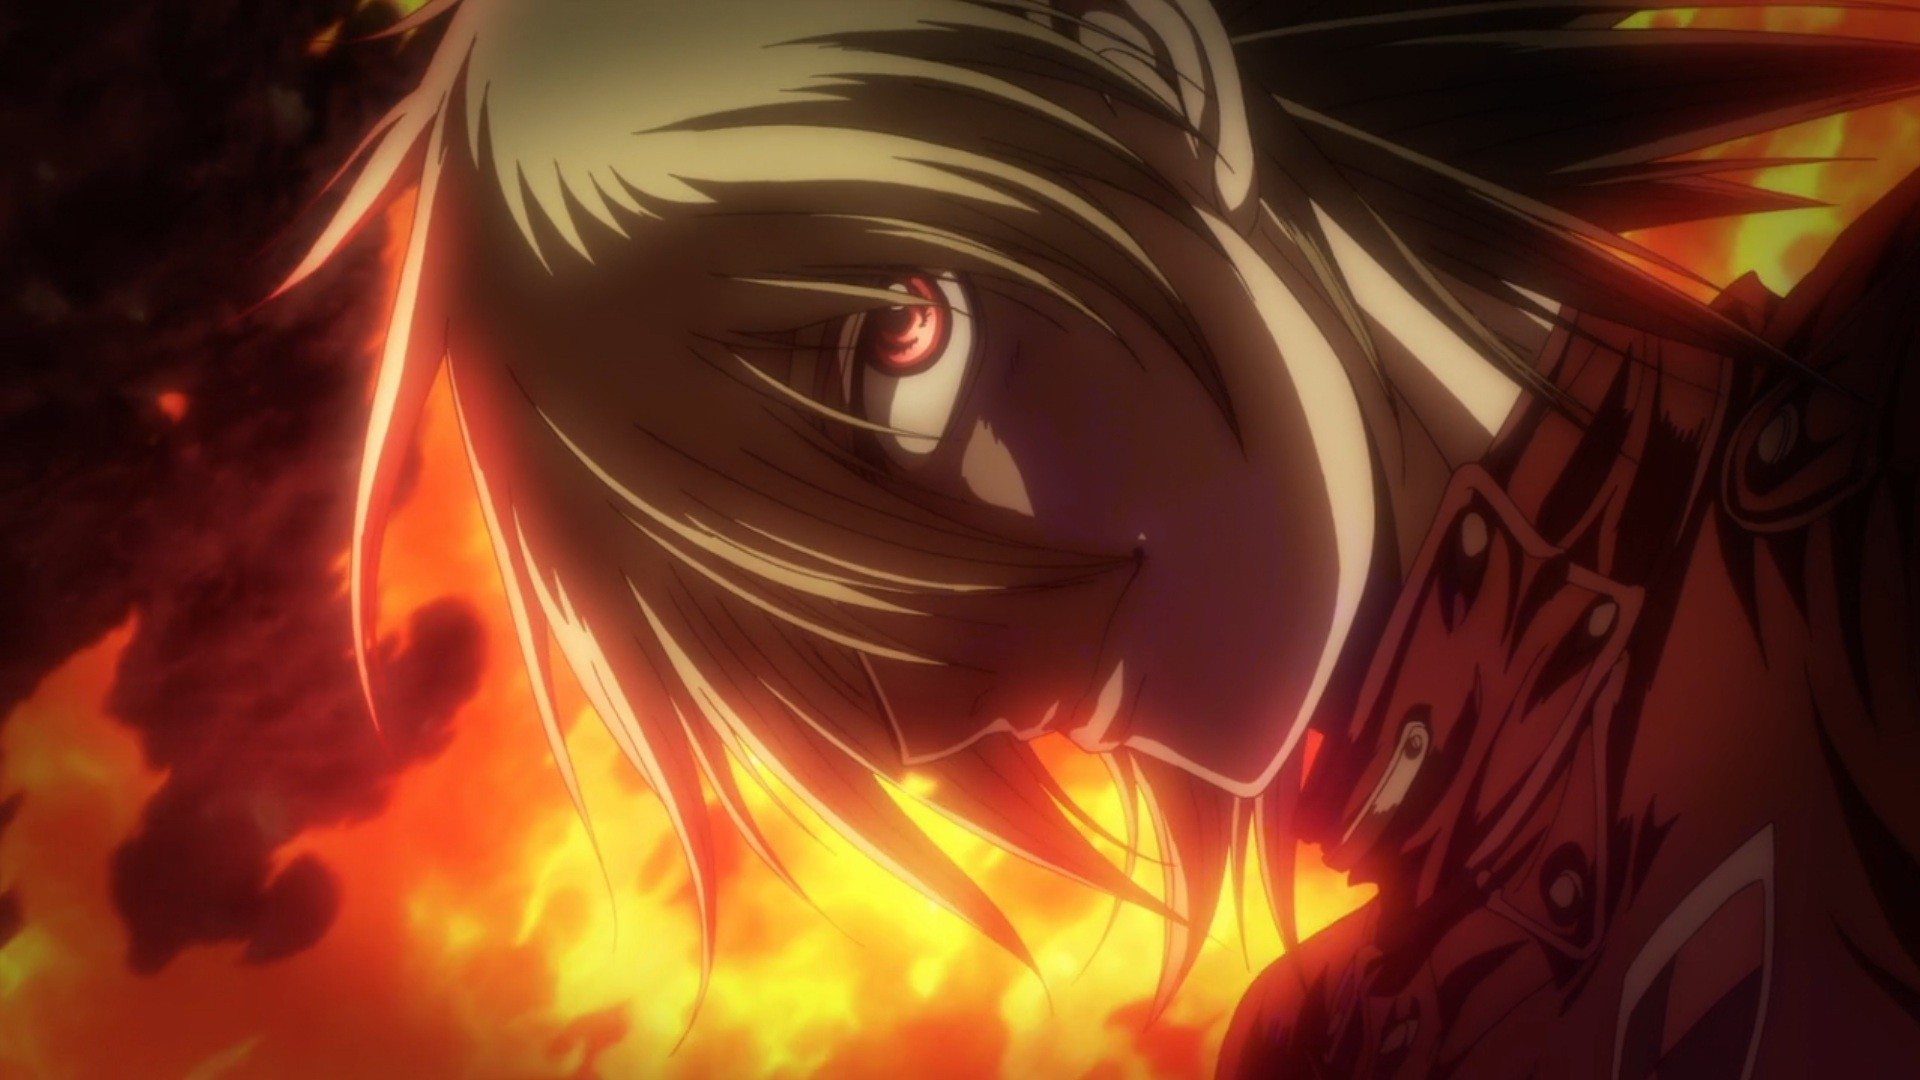 Seras Victoria Wallpaper 1920x1080